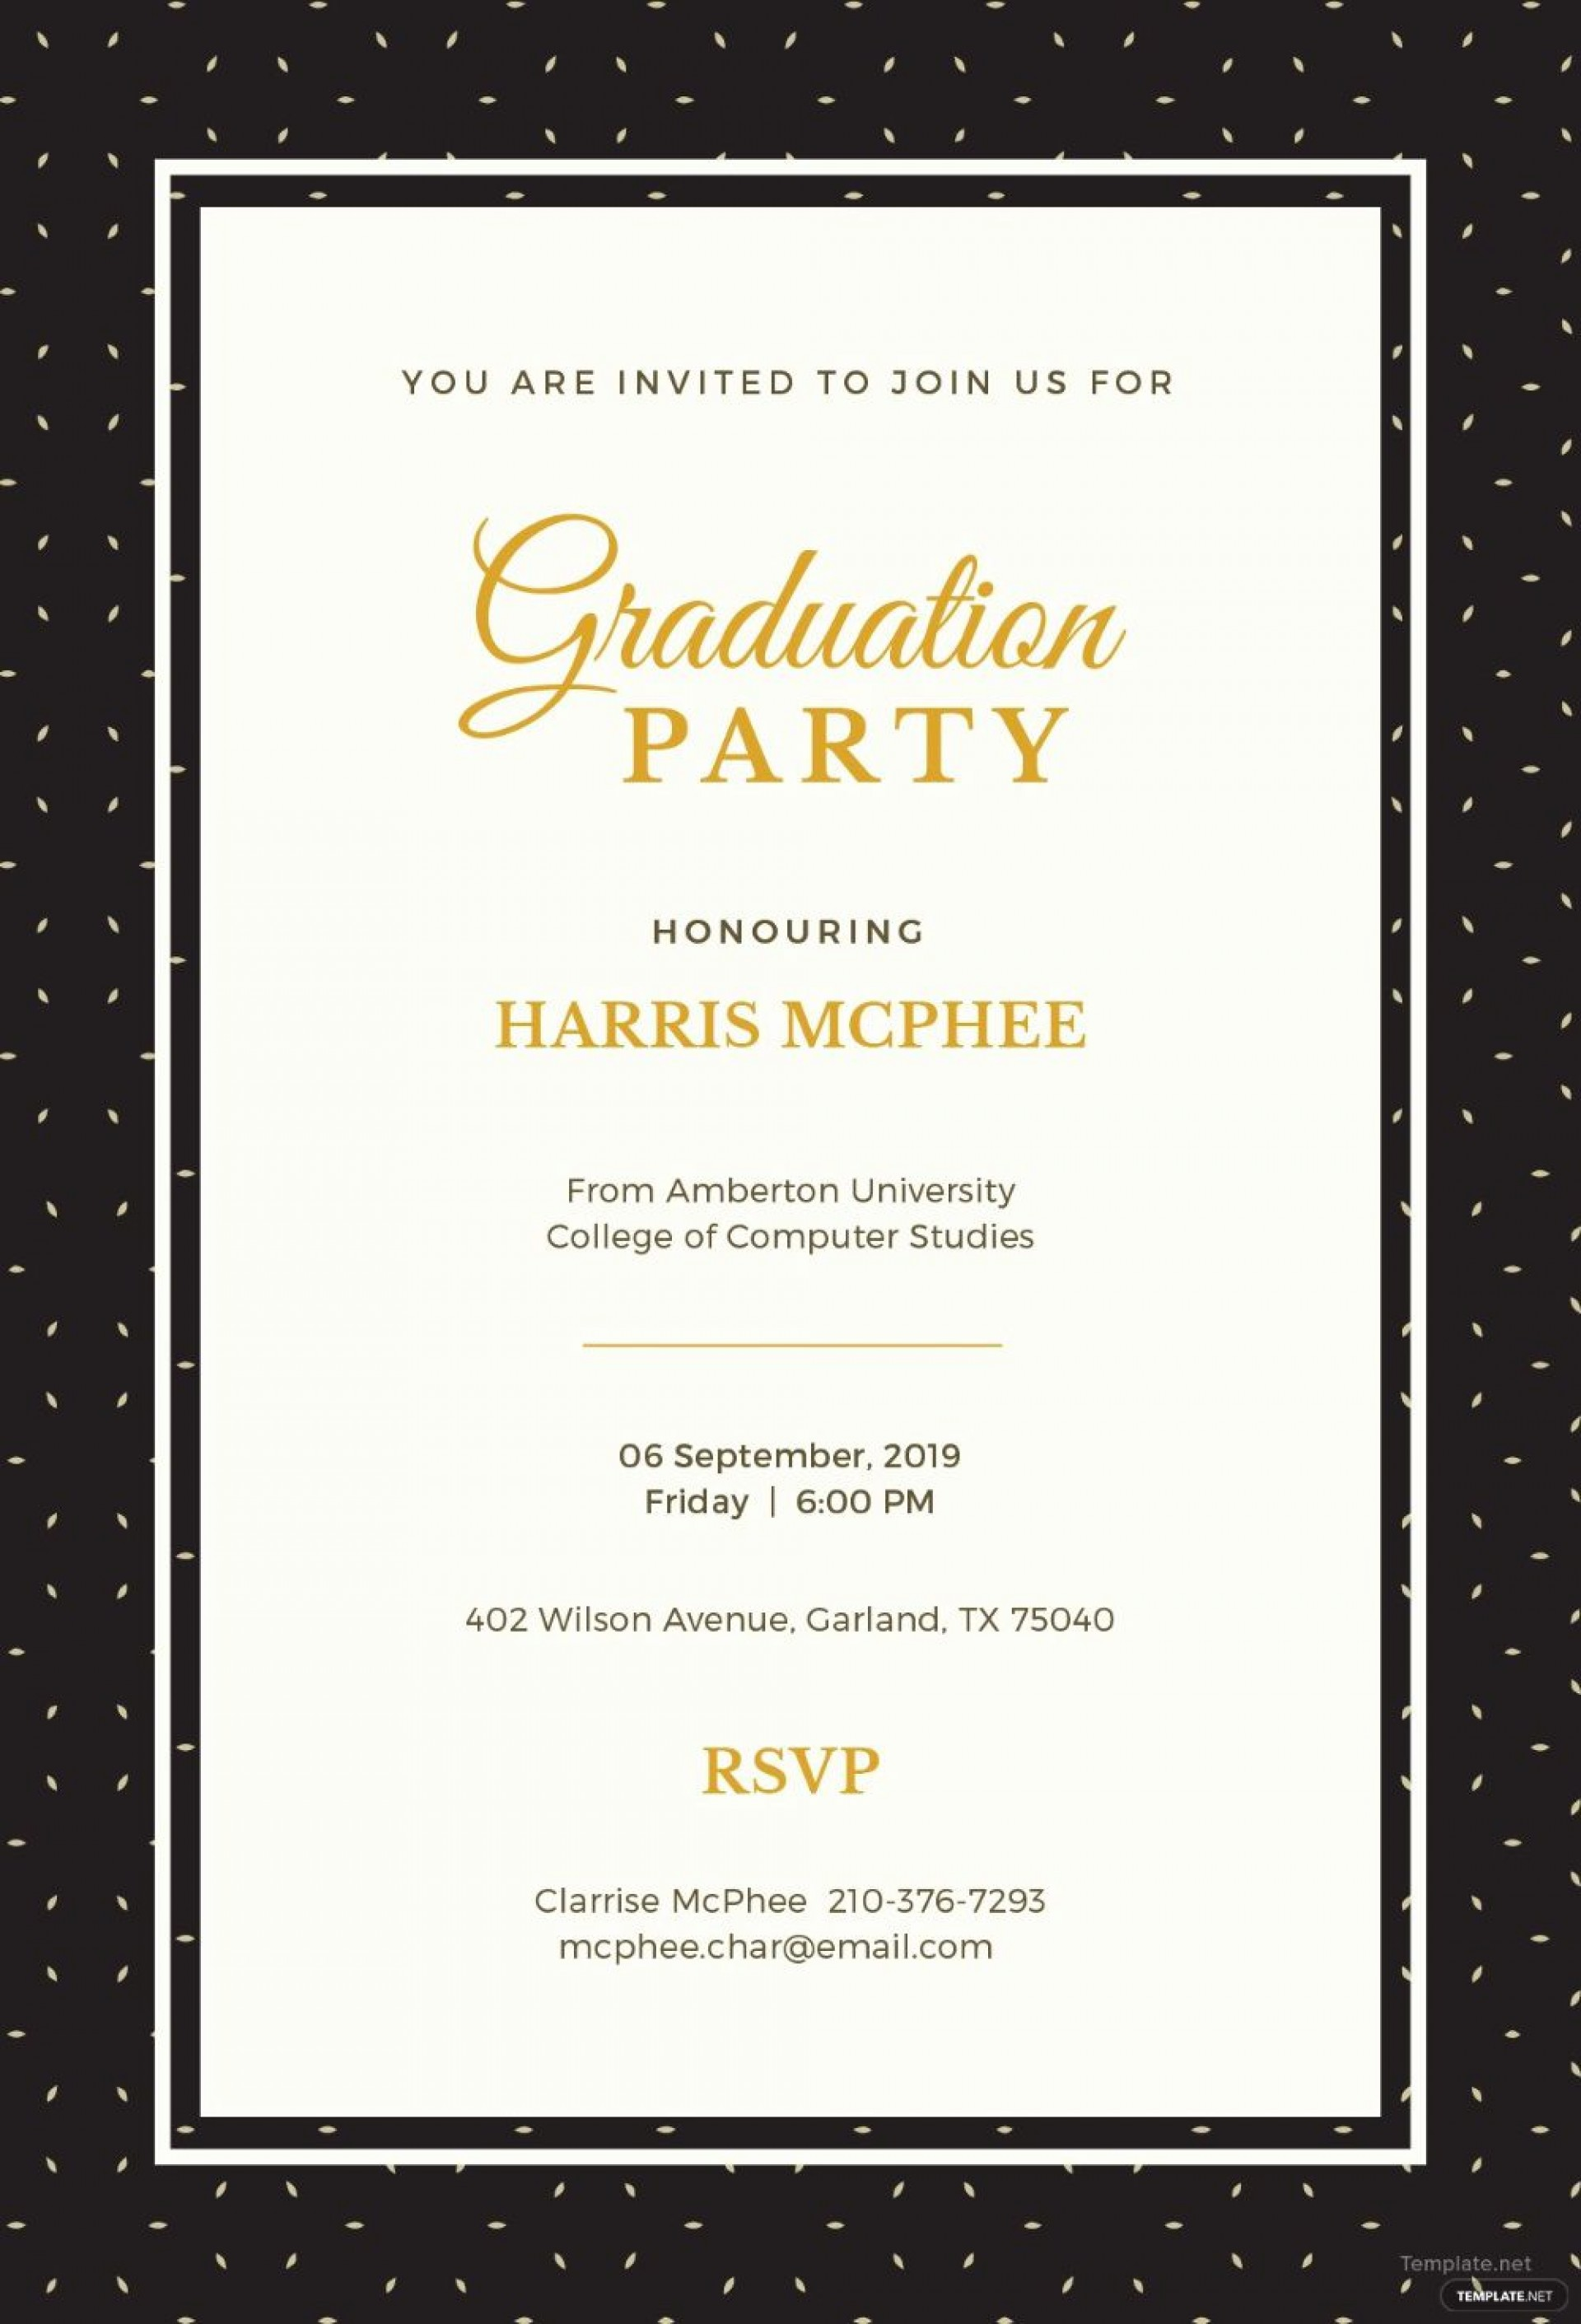 003 Exceptional Free Graduation Announcement Template High Resolution  Templates For Word Microsoft1920